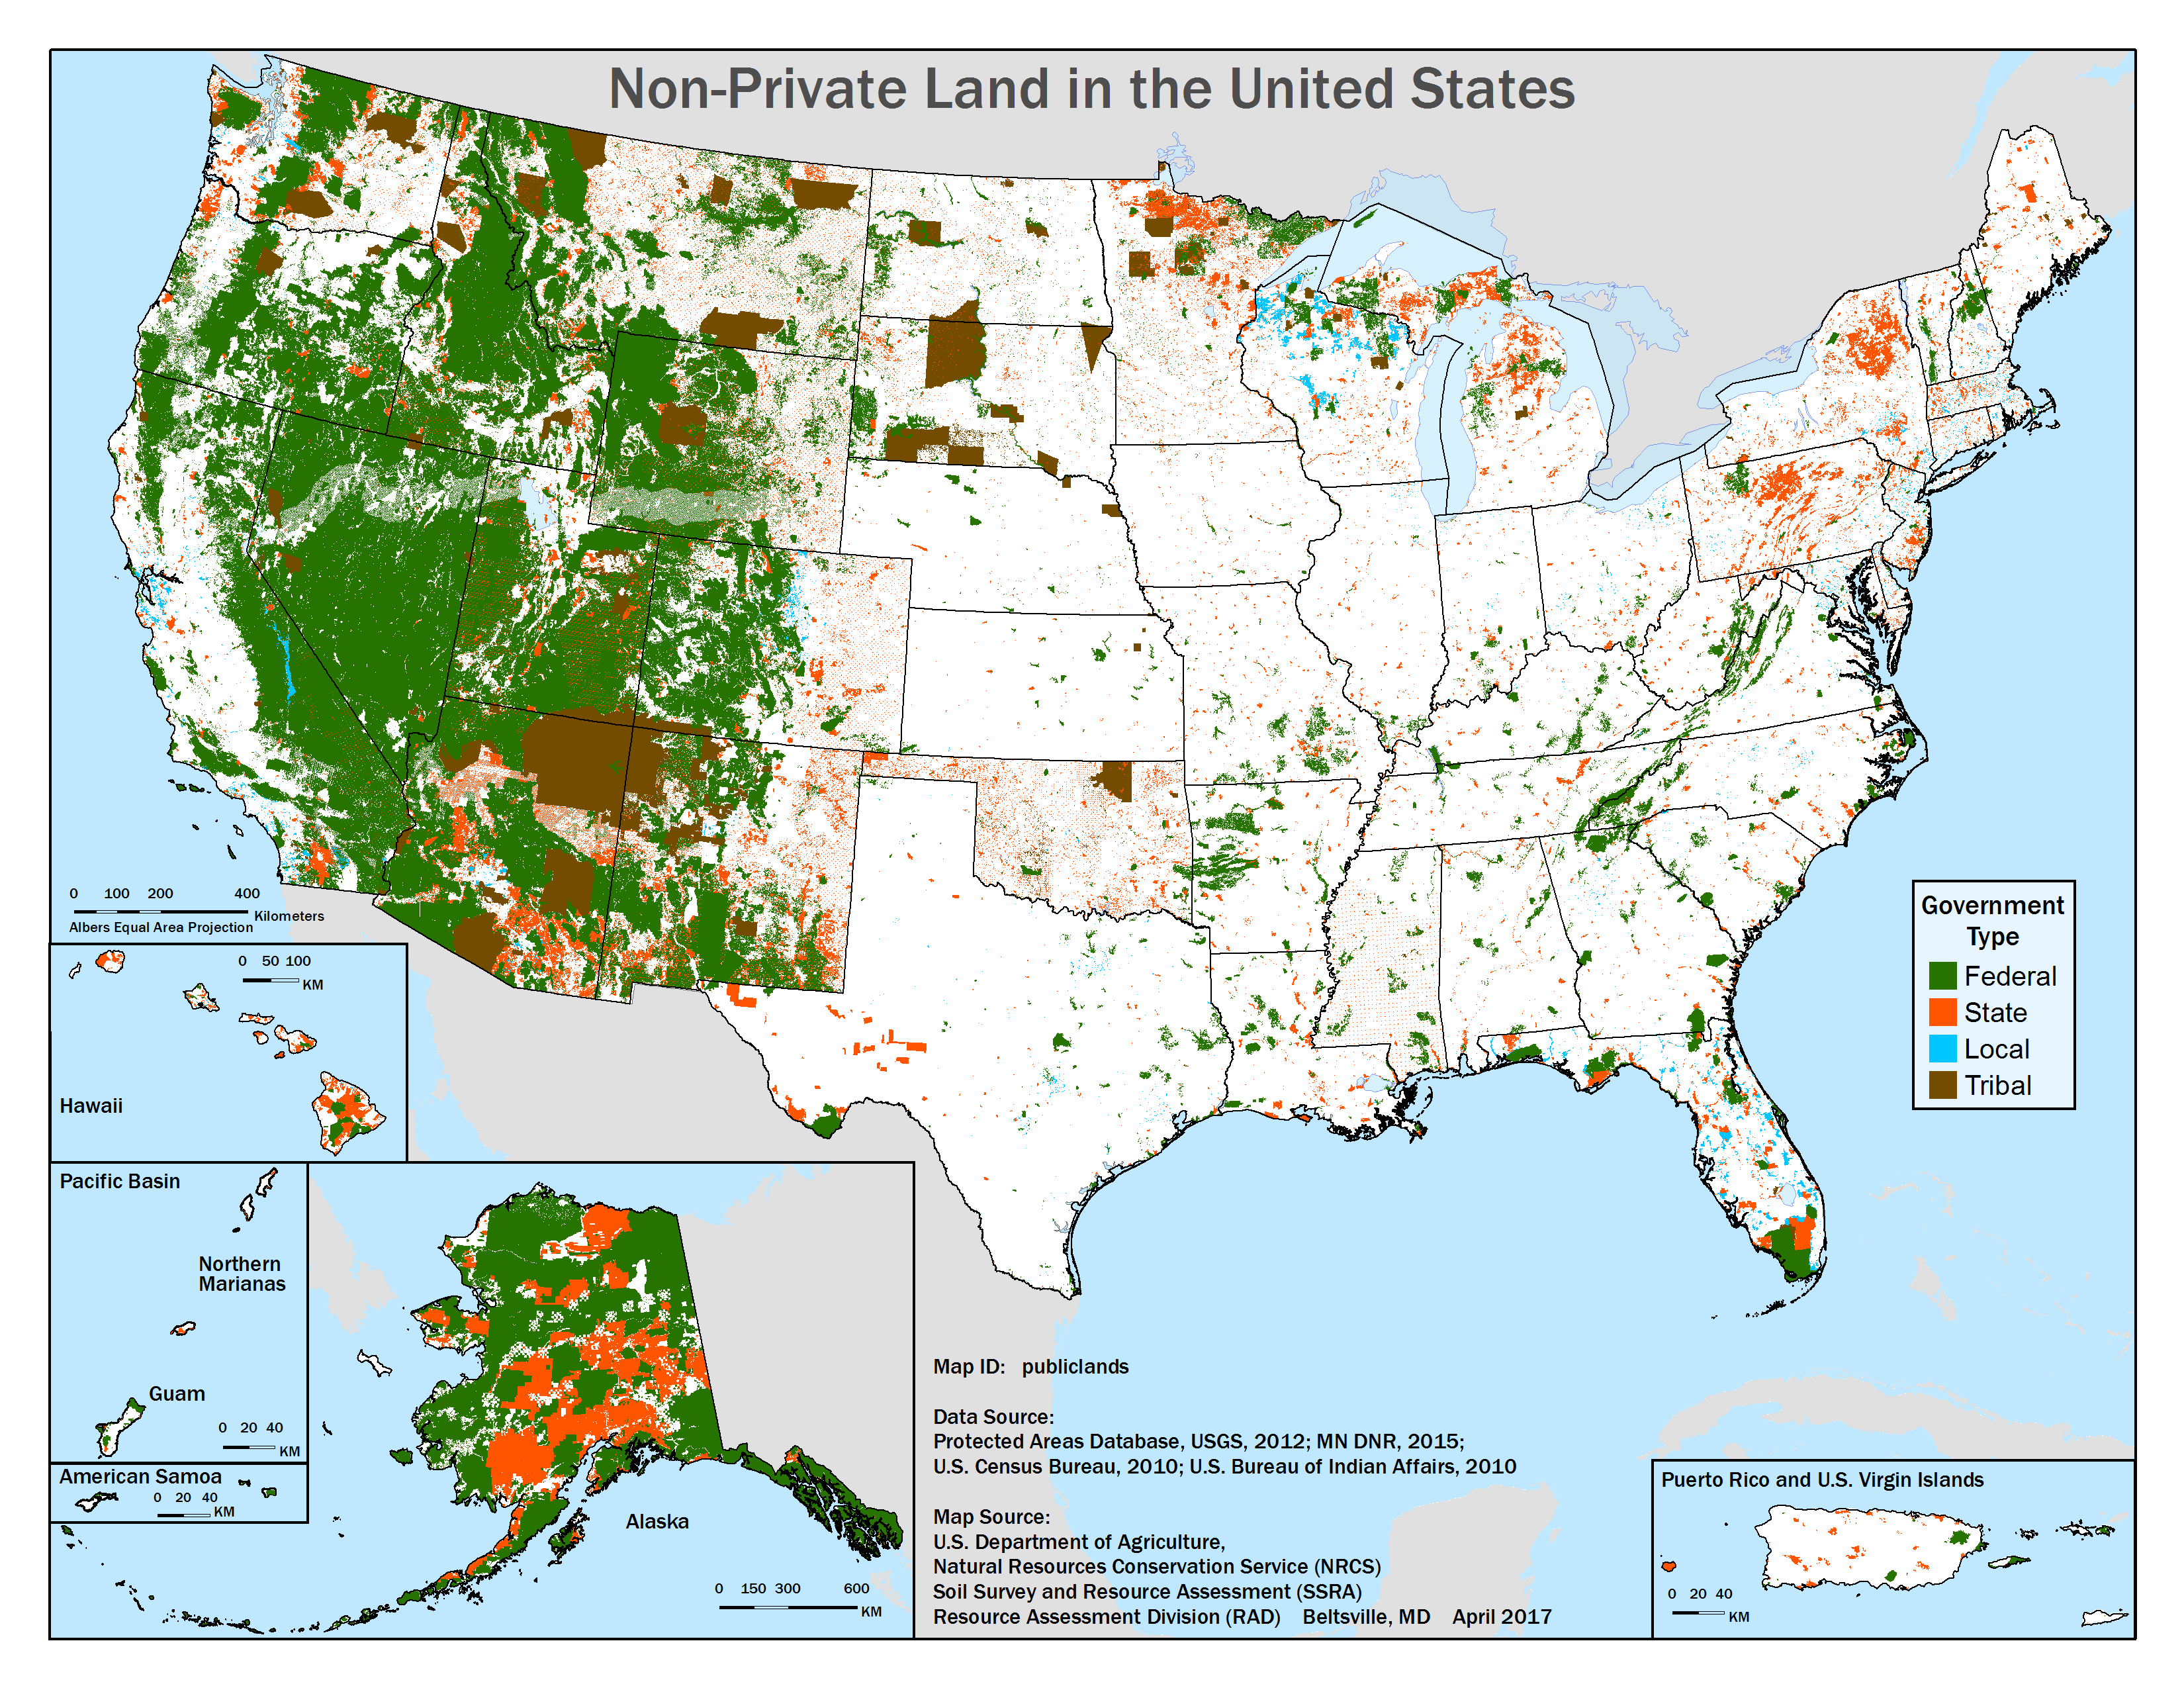 NonPrivate Land In The United States United States Pinterest - Contiguous us hillshade map